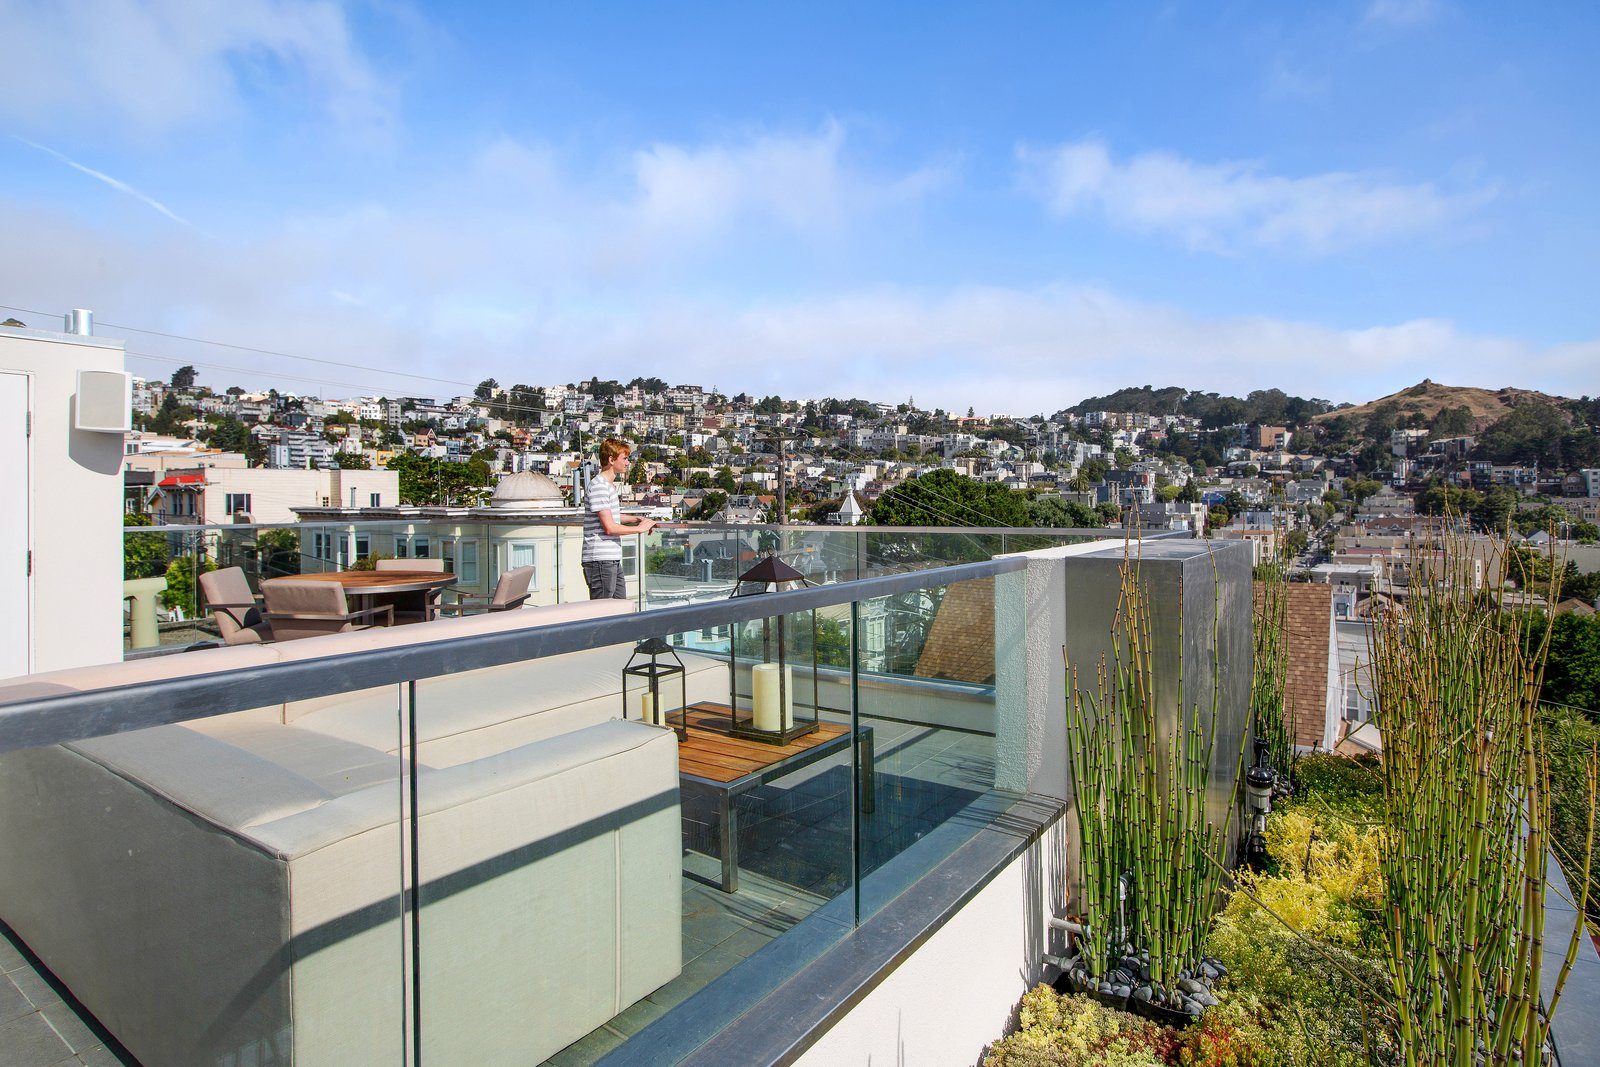 Outdoor, Rooftop, Large Patio, Porch, Deck, and Tile Patio, Porch, Deck  LEED Platinum House in SF by DNM Architecture